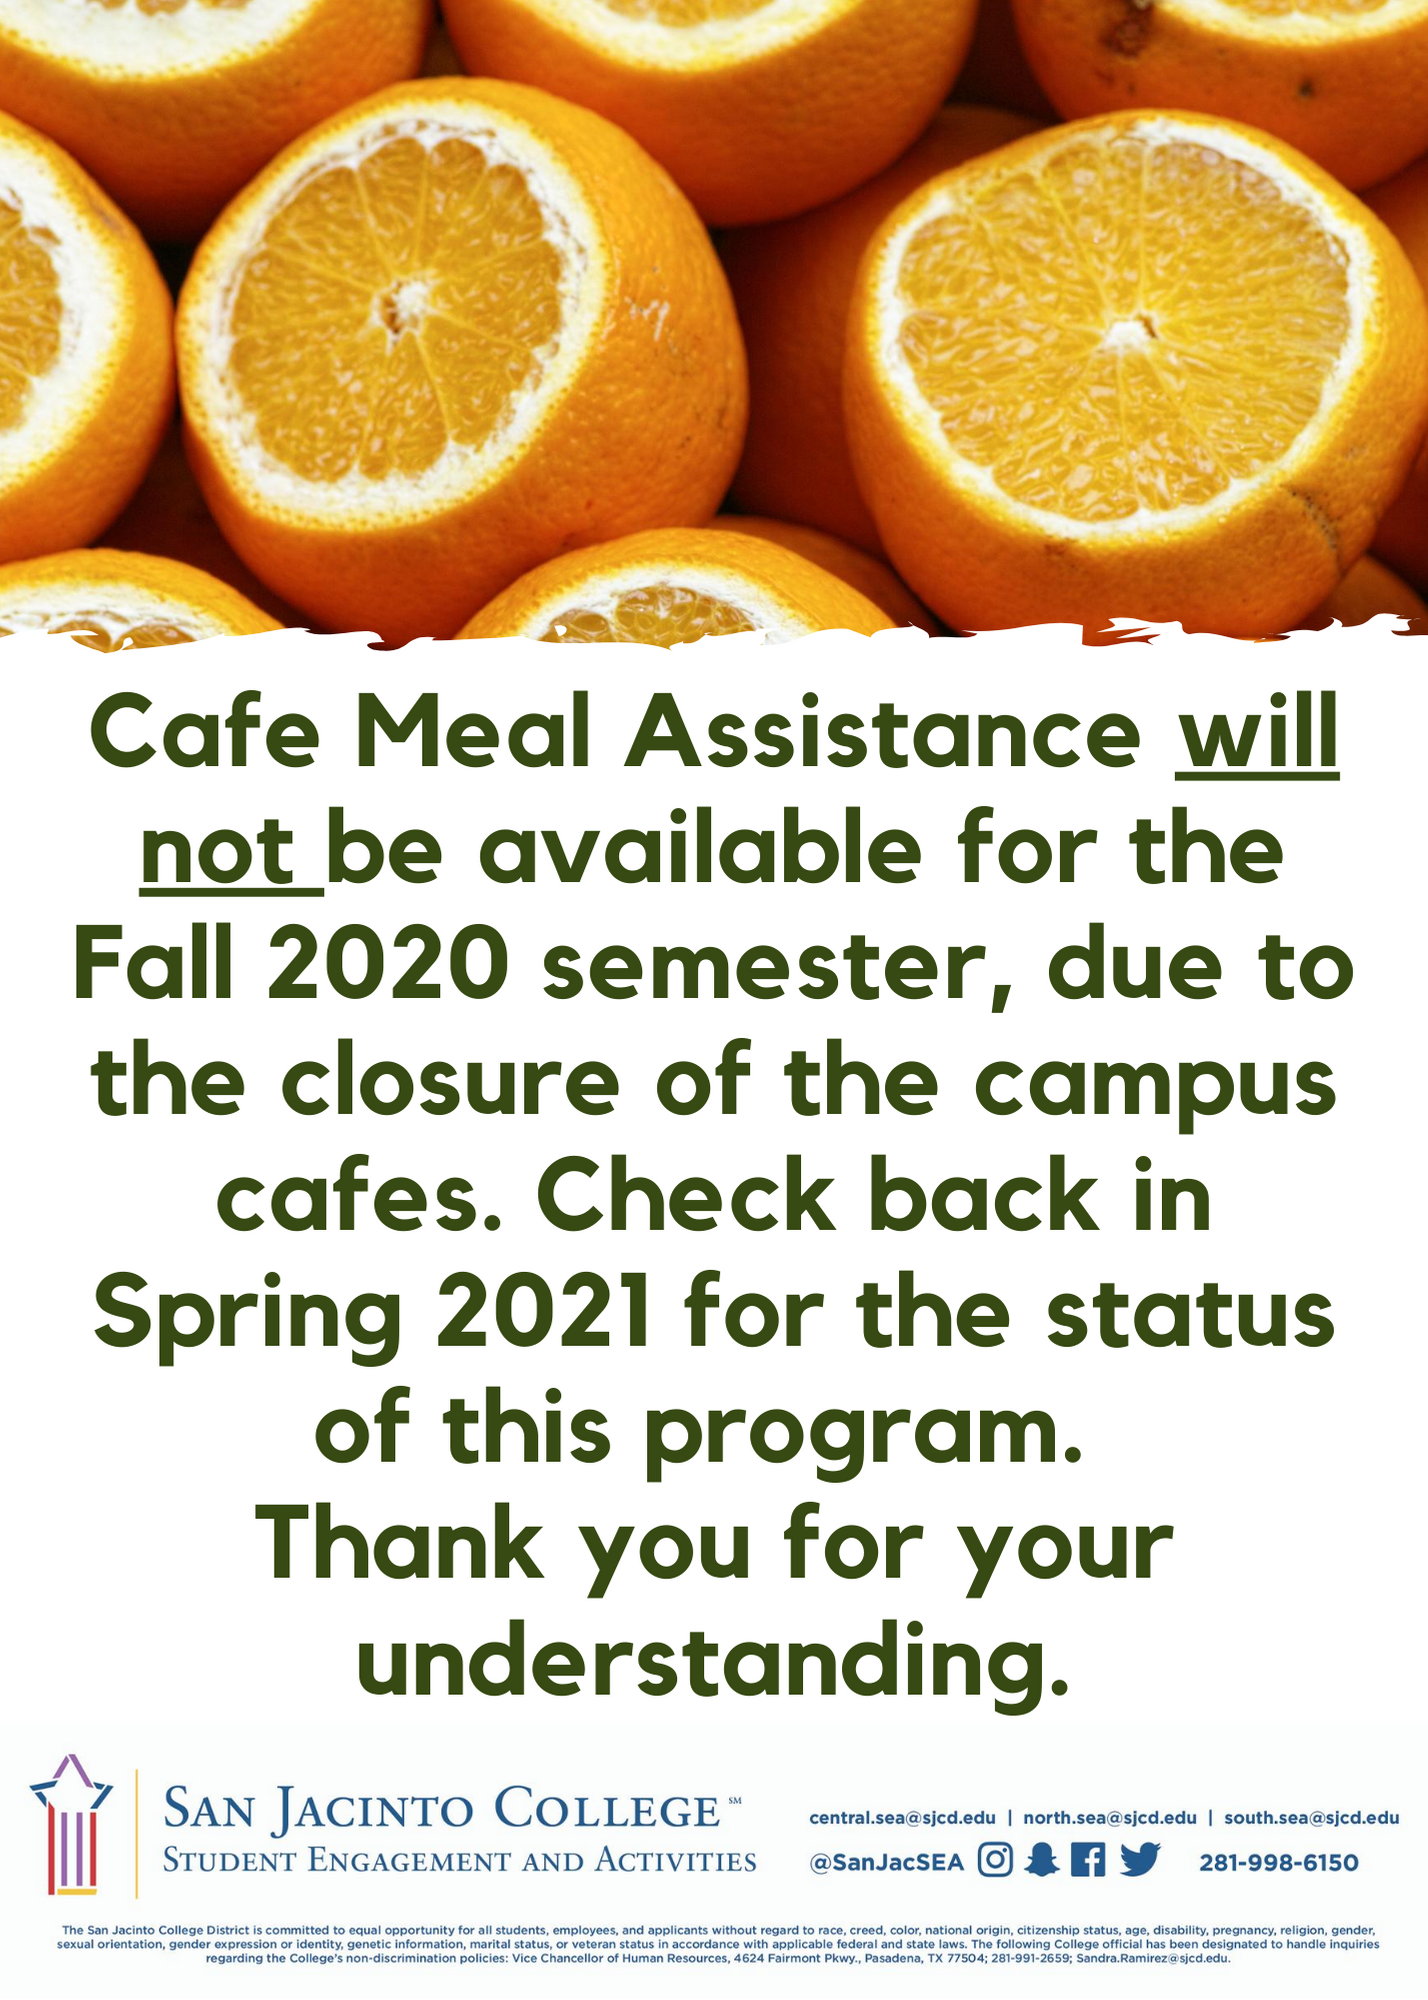 Cafe Meals Are not available for Fall 2020